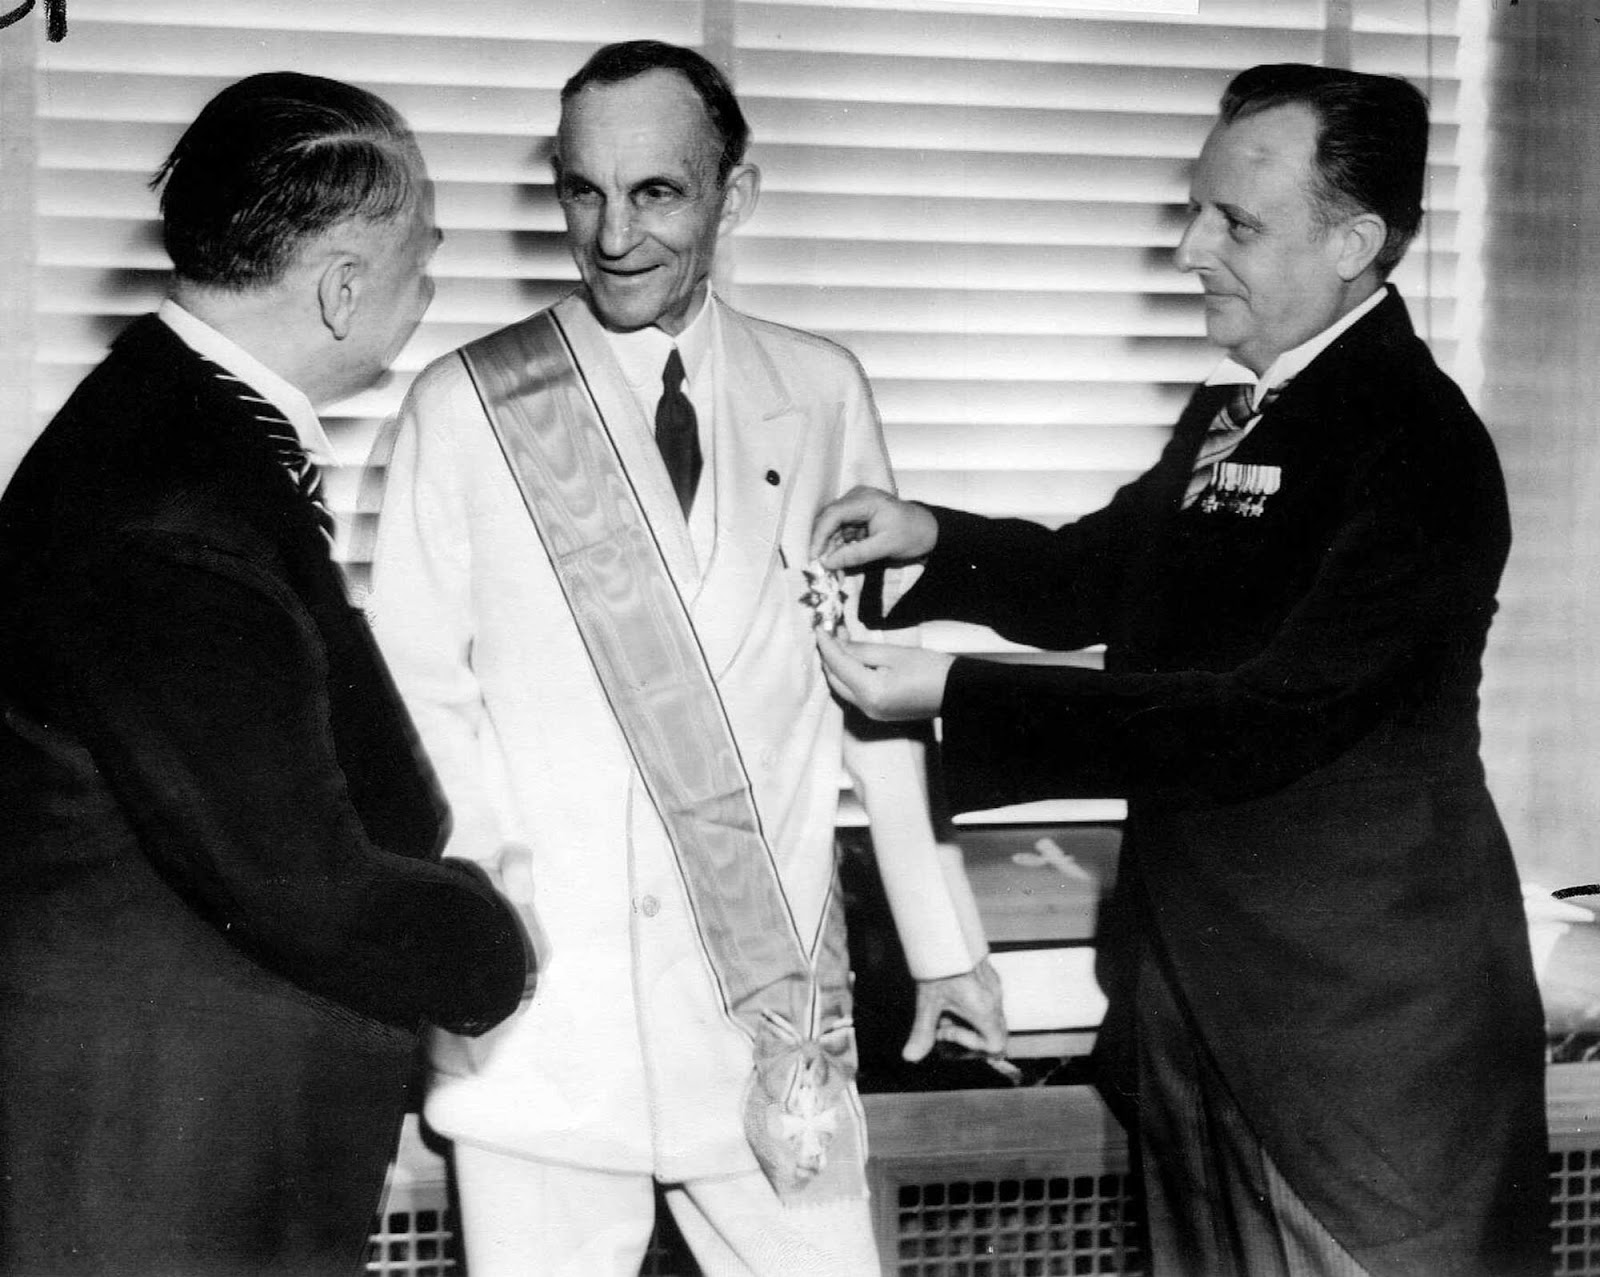 Henry Ford Receiving The Grand Cross Of The German Eagle From Nazi Officials